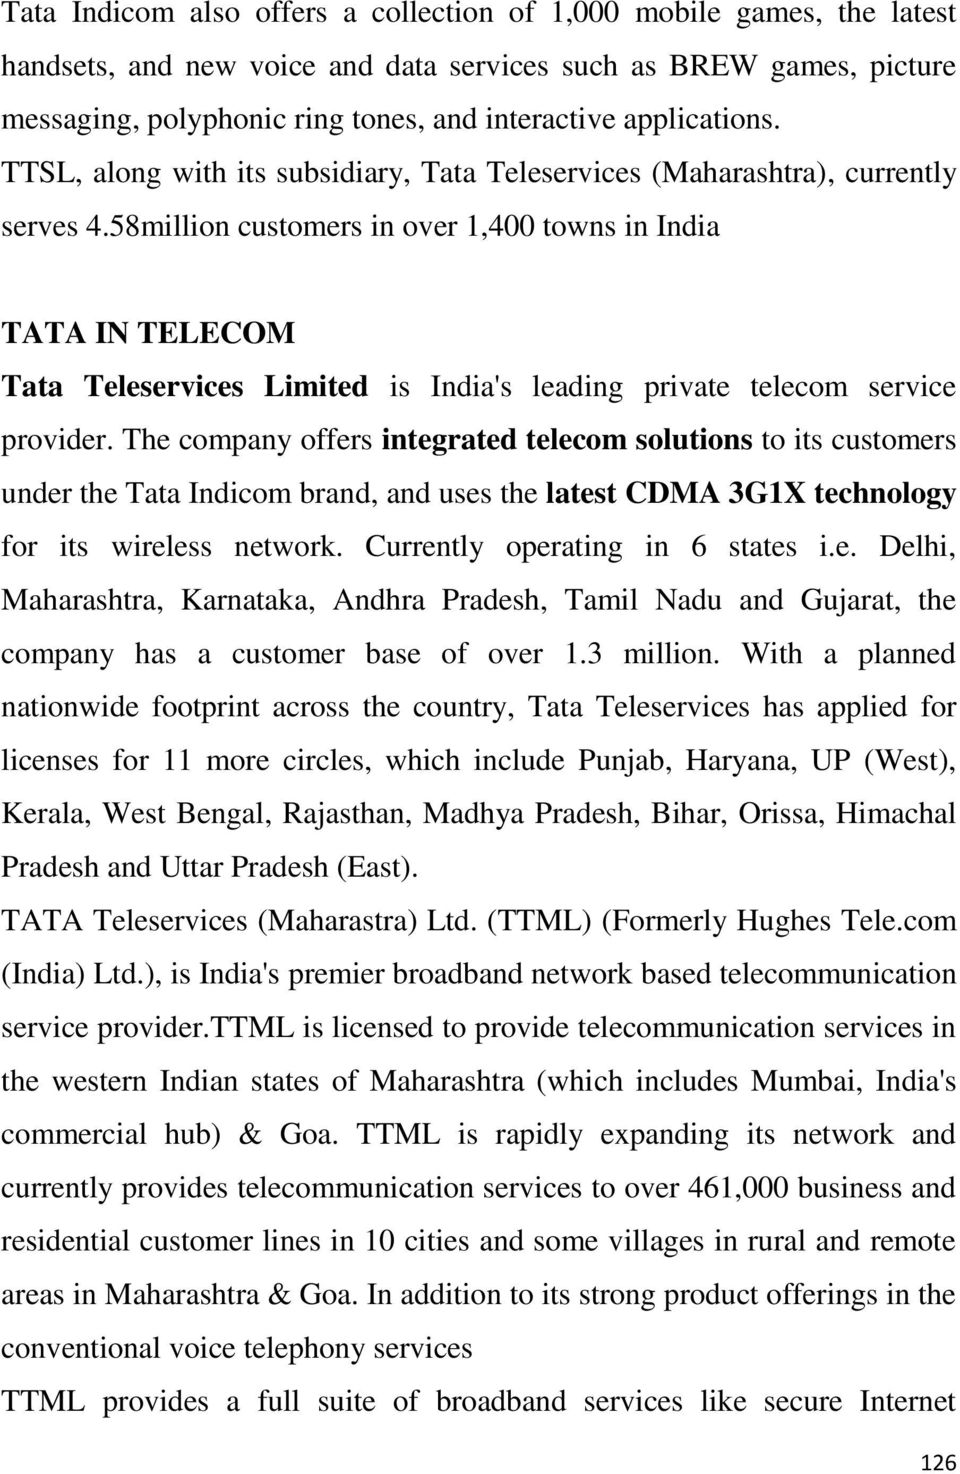 58million customers in over 1,400 towns in India TATA IN TELECOM Tata Teleservices Limited is India's leading private telecom service provider.